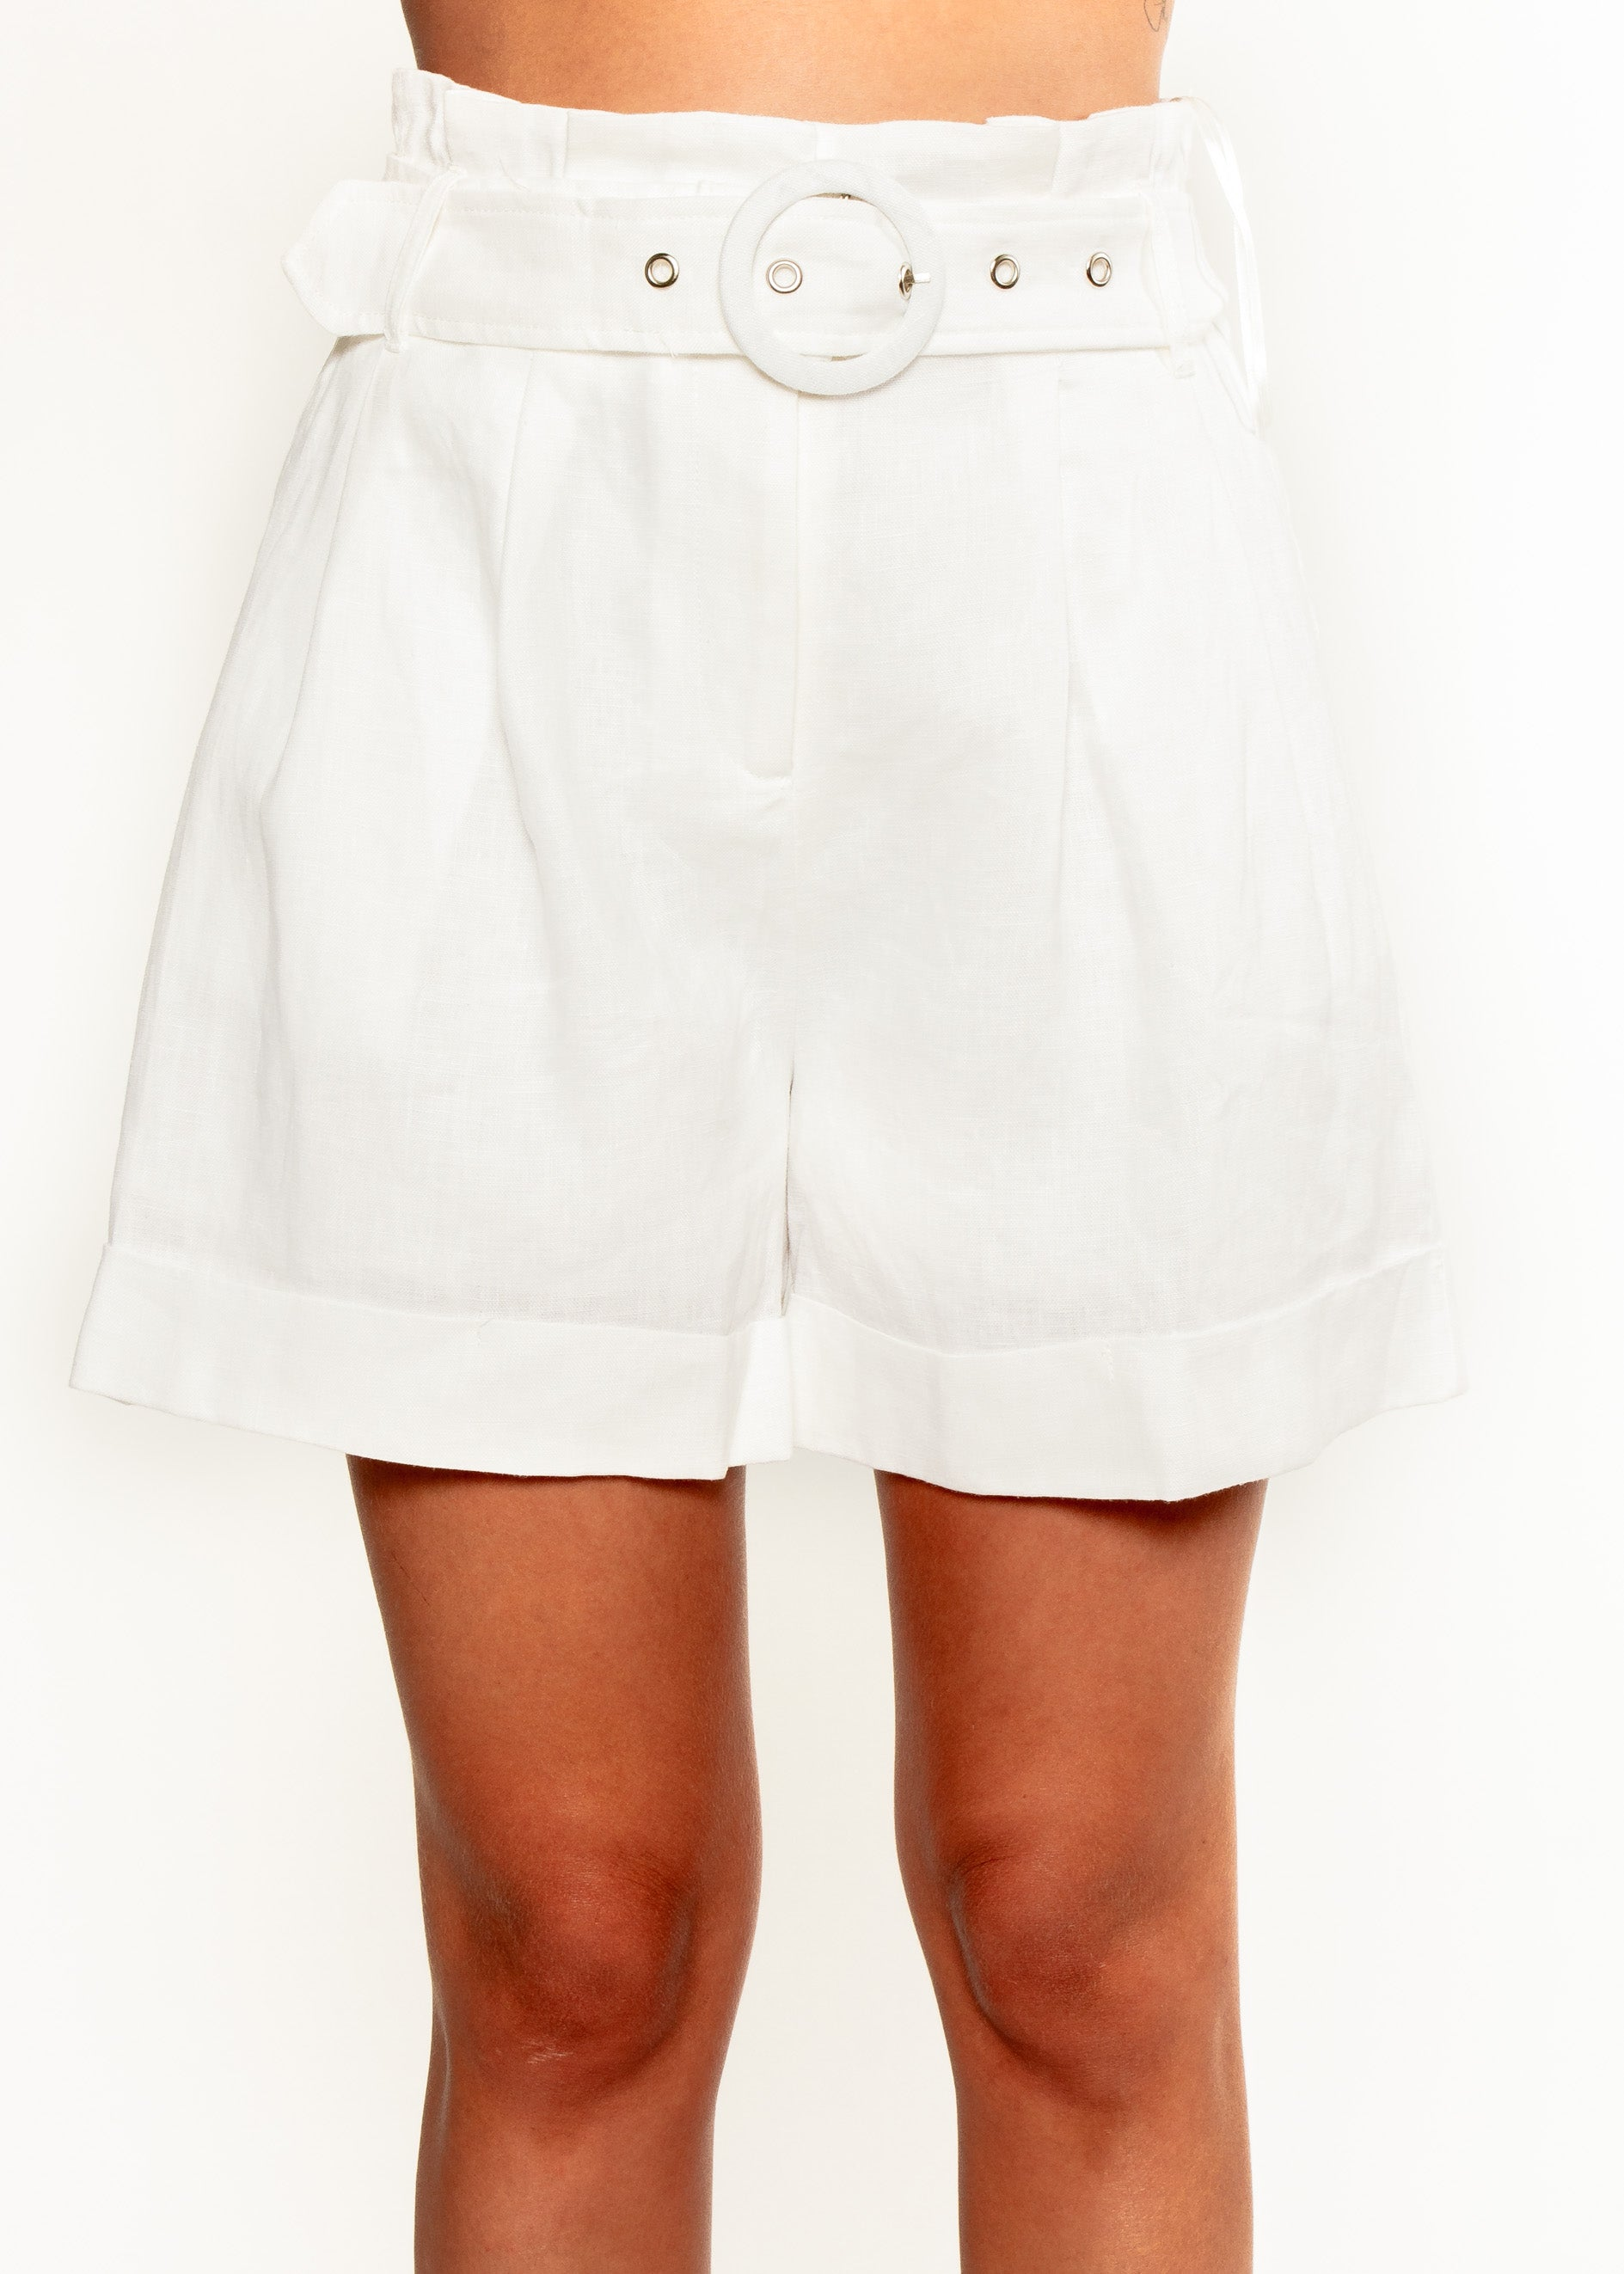 Zara Shorts - White